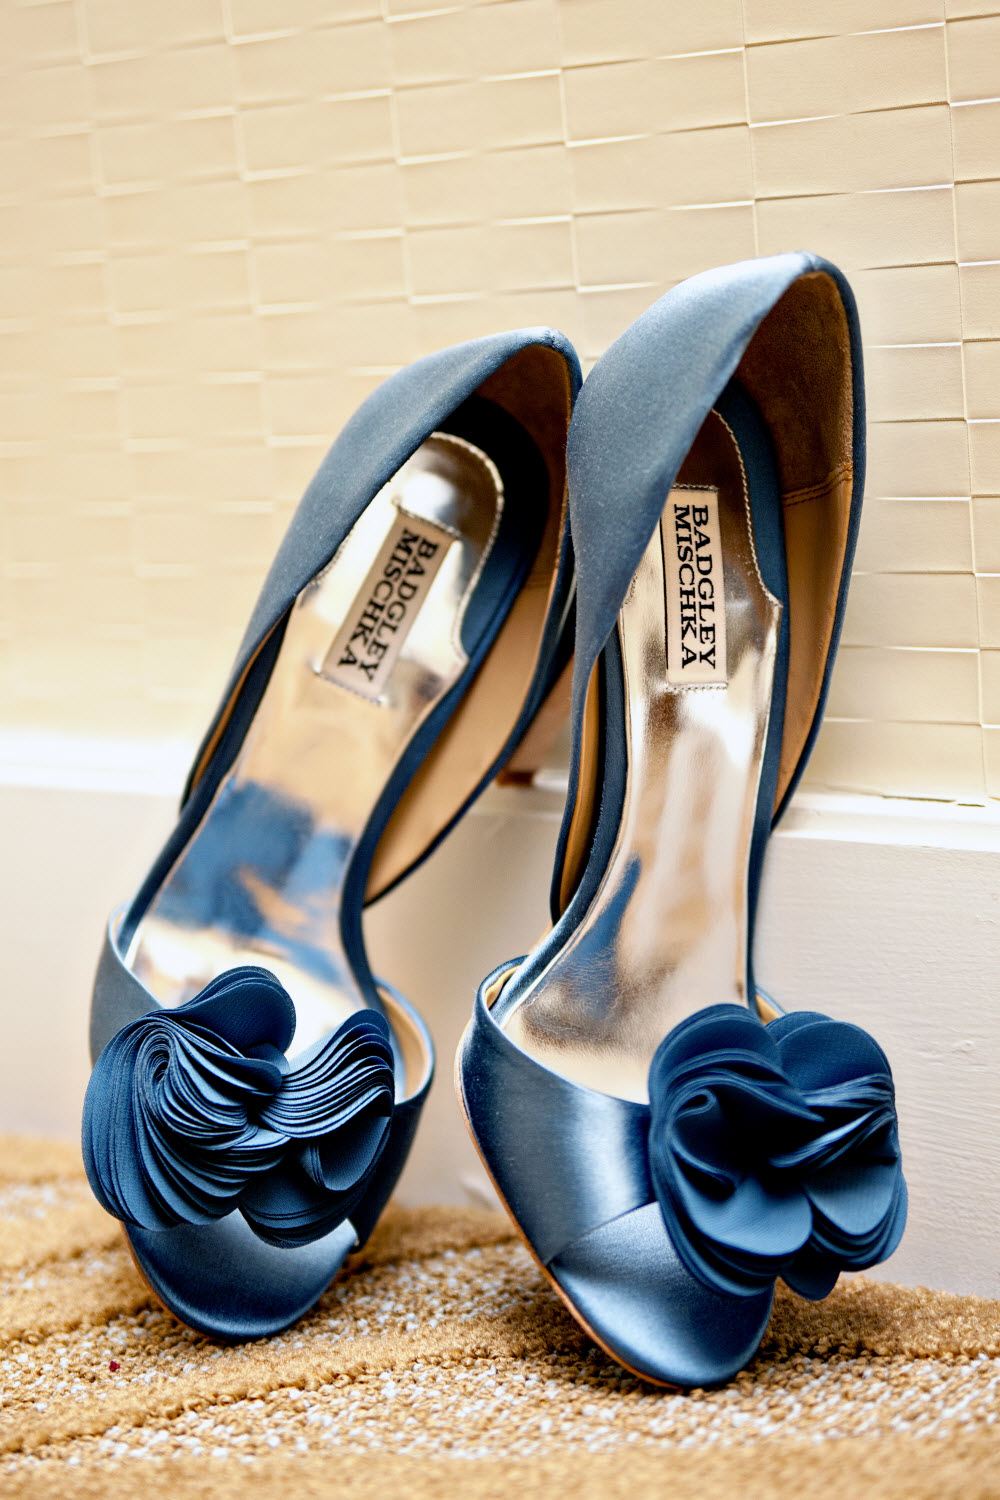 Something-blue-chic-wedding-shoes-badgley-mischka-peep-toe-bridal-heels.original